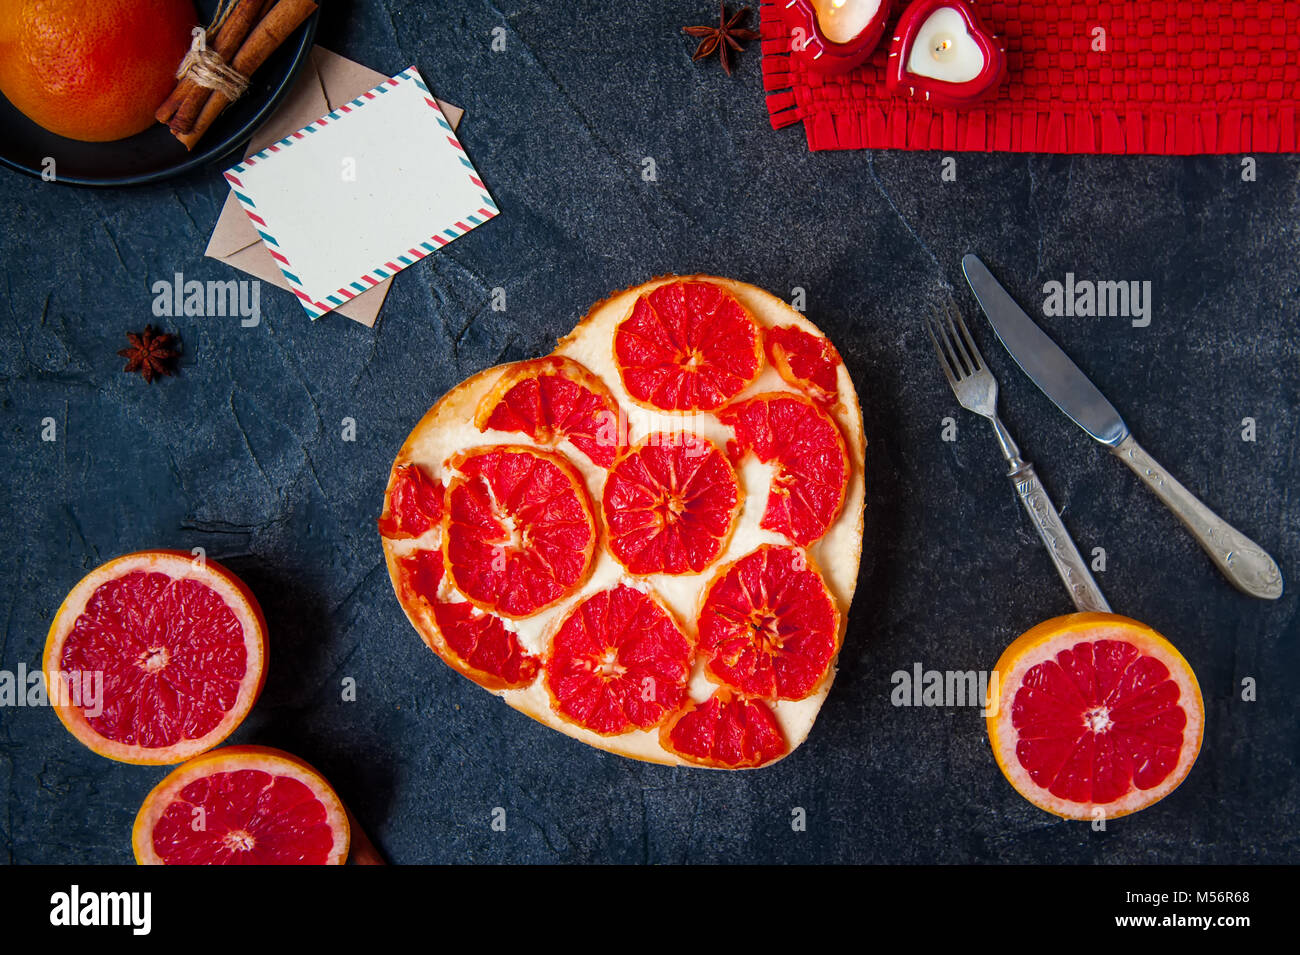 Top view baked cheesecake with red grapefruit slices in the shape of heart on the black stone background, postcard - Stock Image